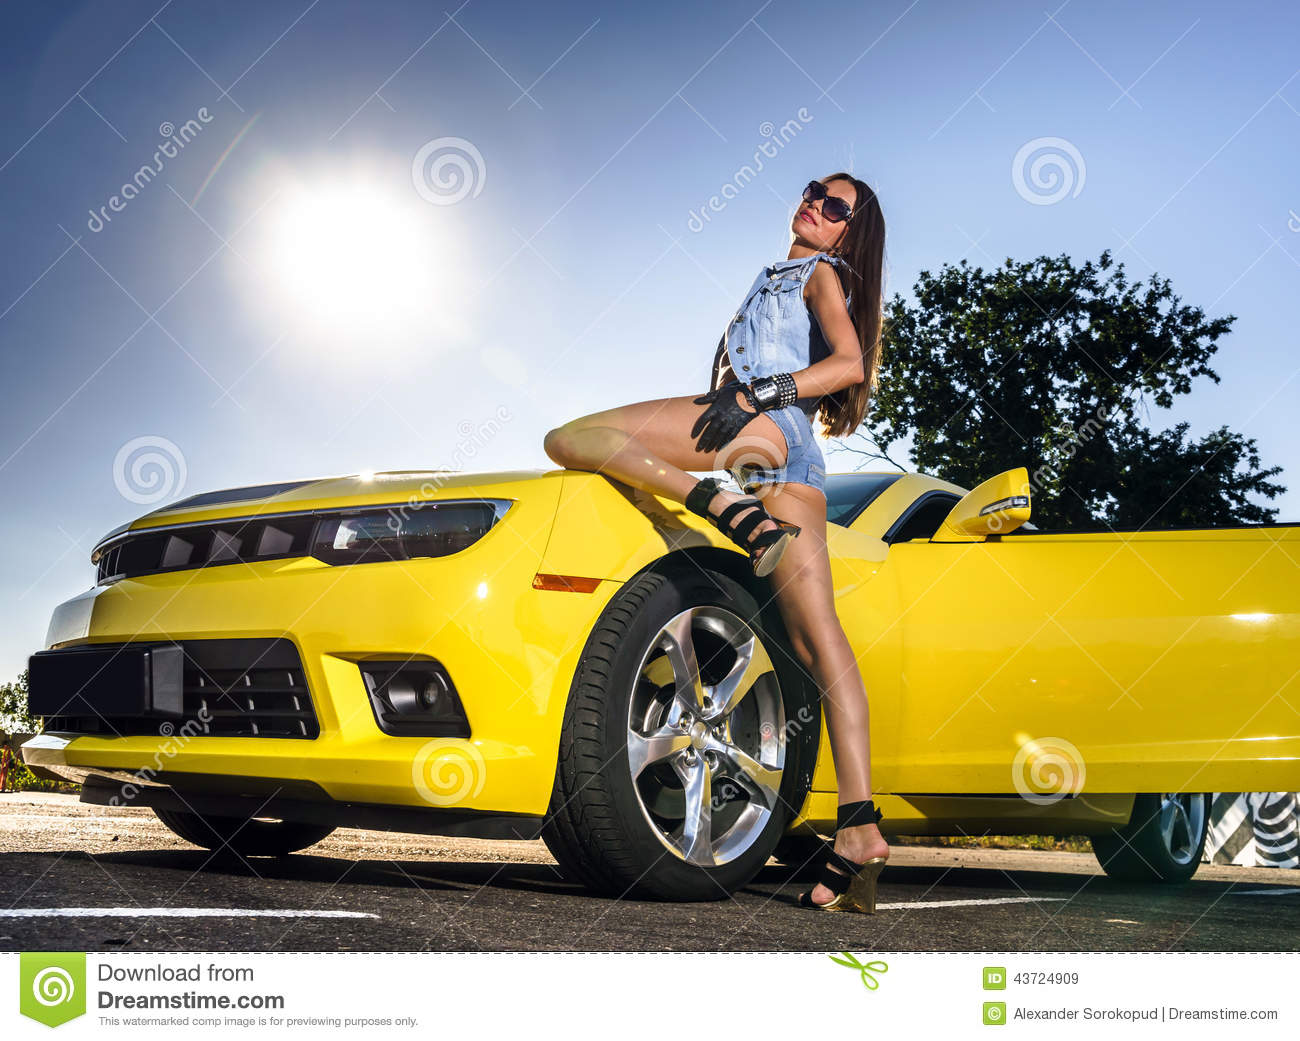 luxury glamour girl and yellow sport car stock image image of body glamour 43724909. Black Bedroom Furniture Sets. Home Design Ideas